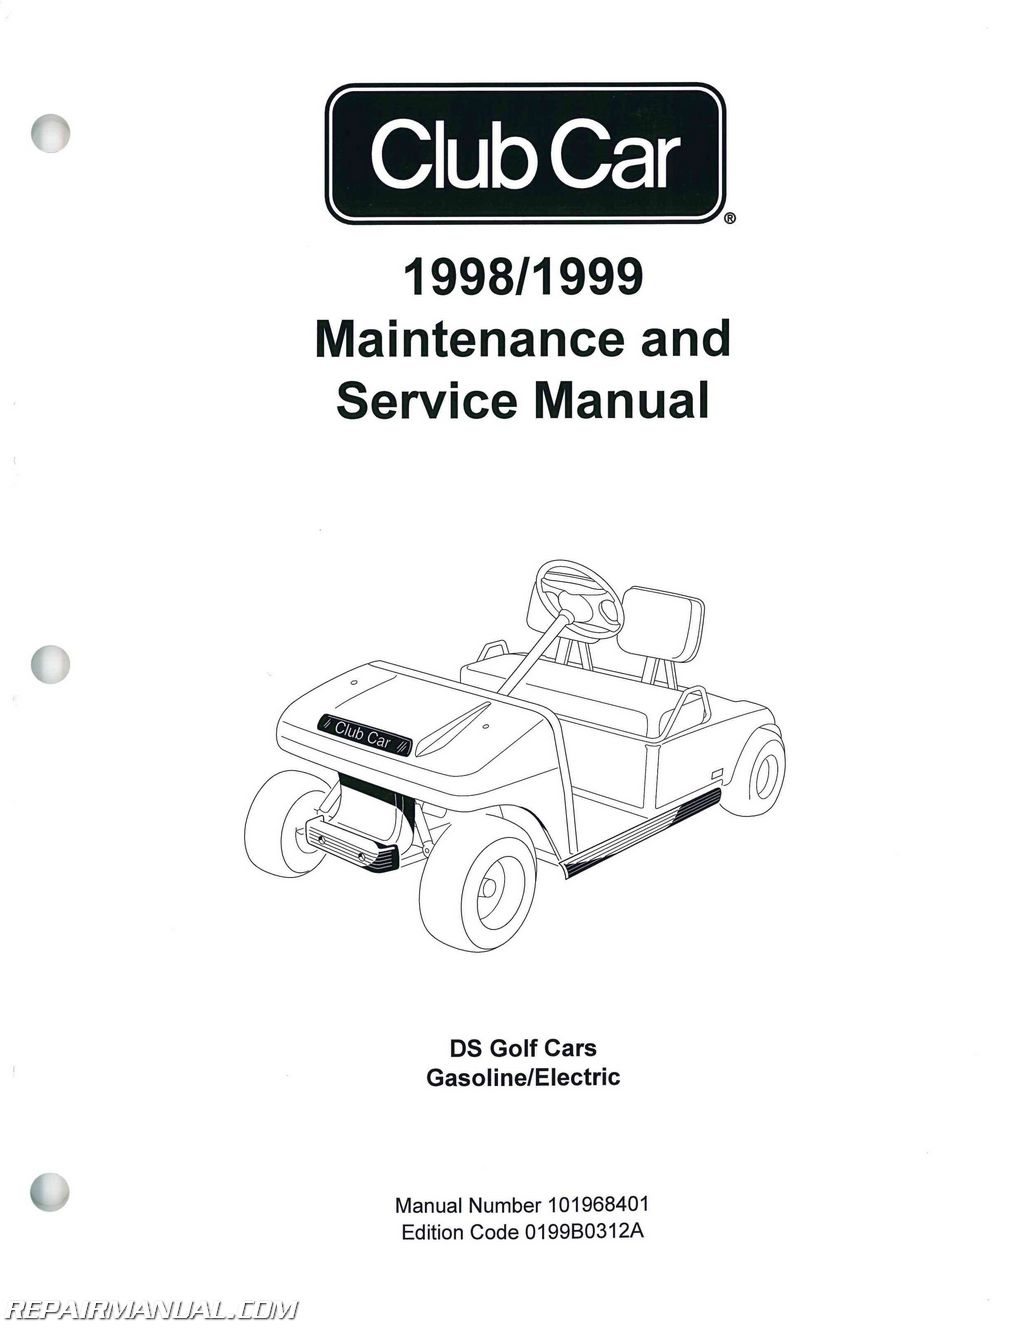 1999 Electric Club Car Gas Wiring Diagram Manual E Books 1995 Yamaha Golf Cart 1998 Ds Service Manual1999